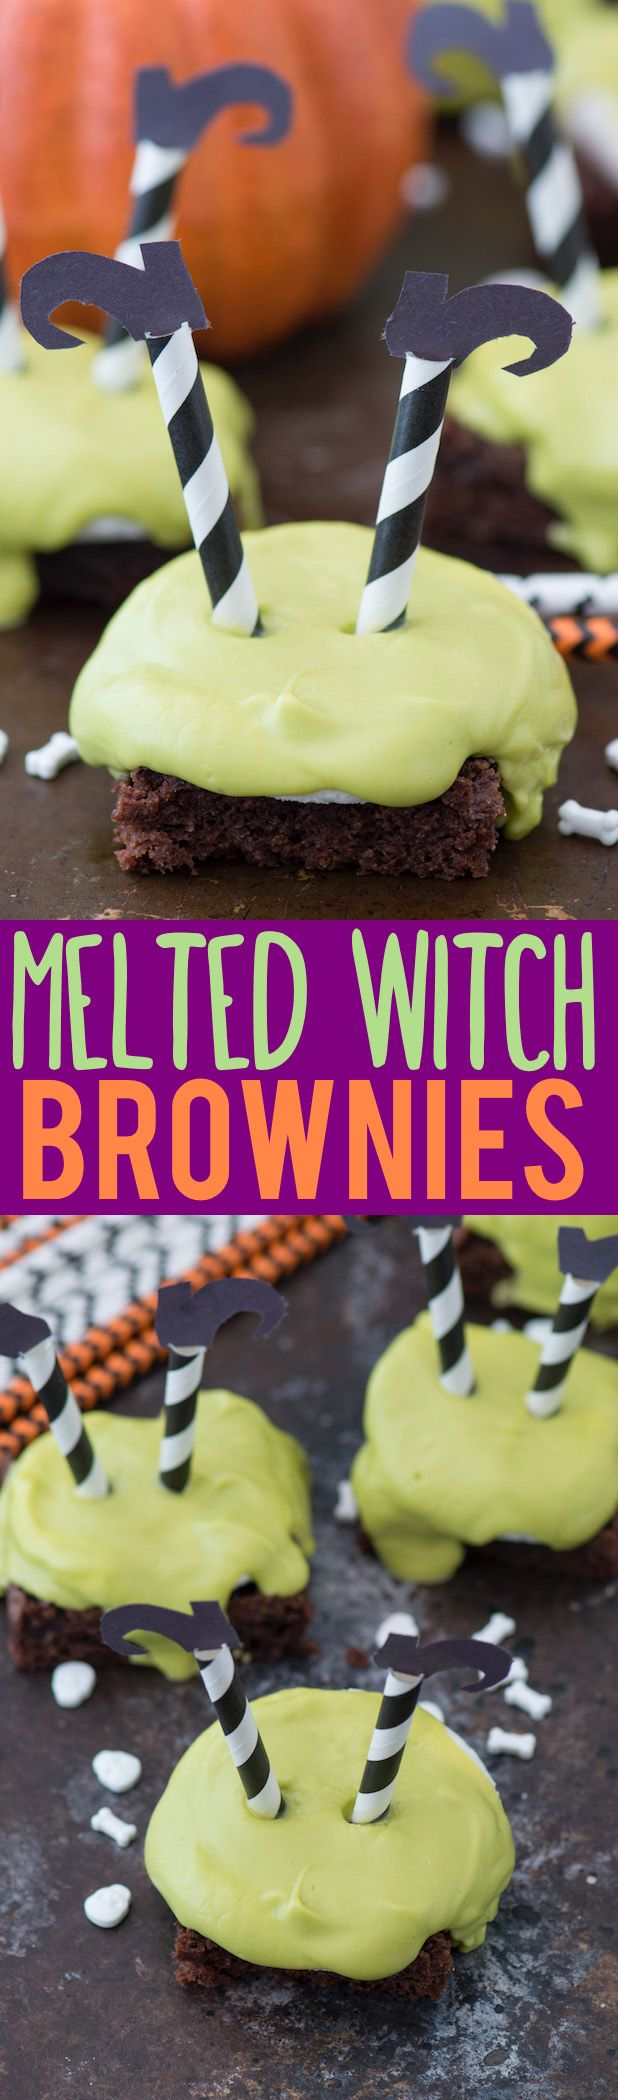 Celebrate Halloween with melted witch brownies! They are so cute, simple to put together with a box of brownie mix, marshmallows, and candy melts!